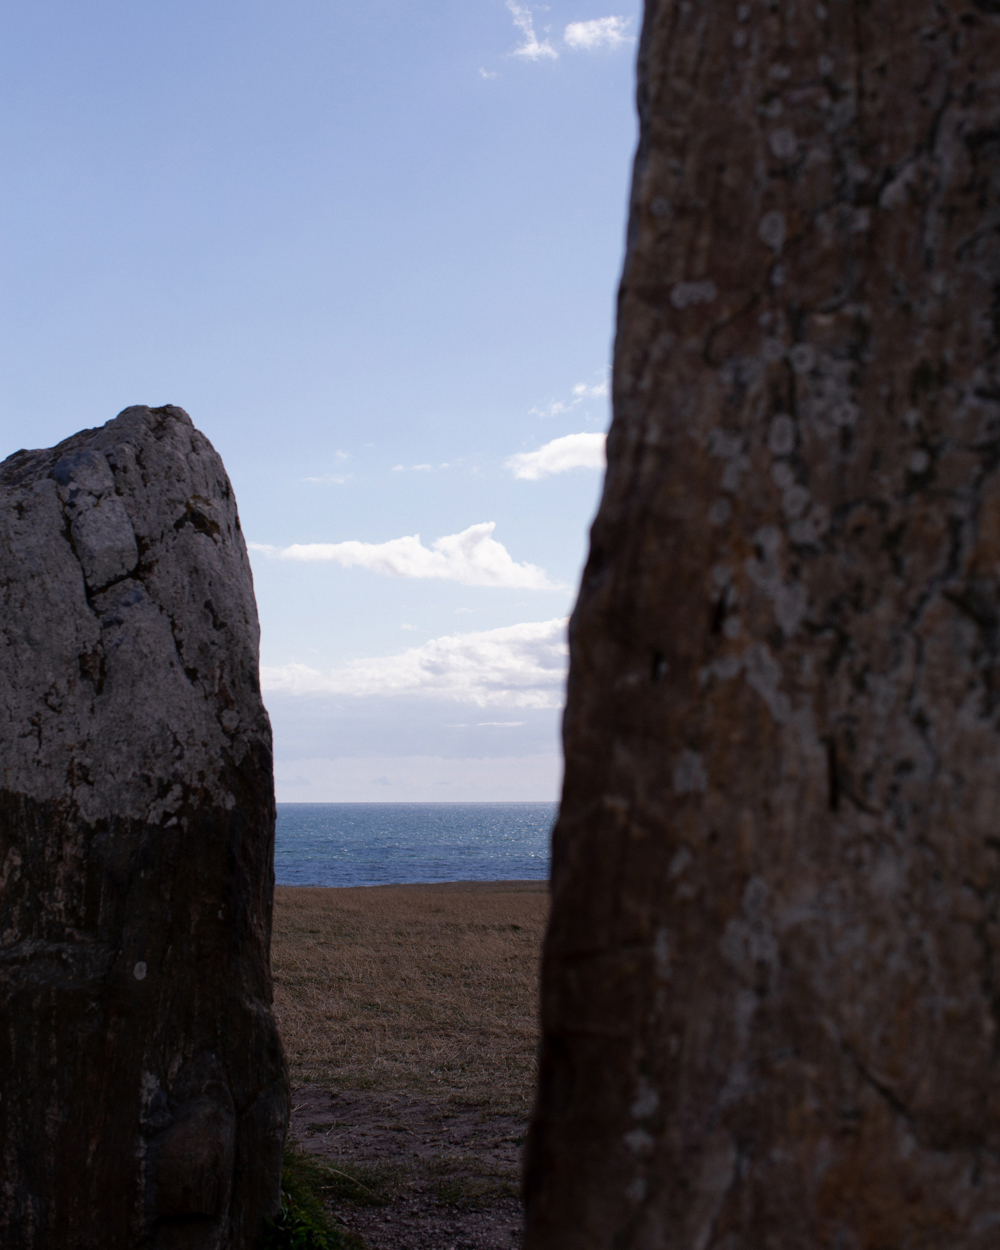 Image of the stone monument Ale stones.